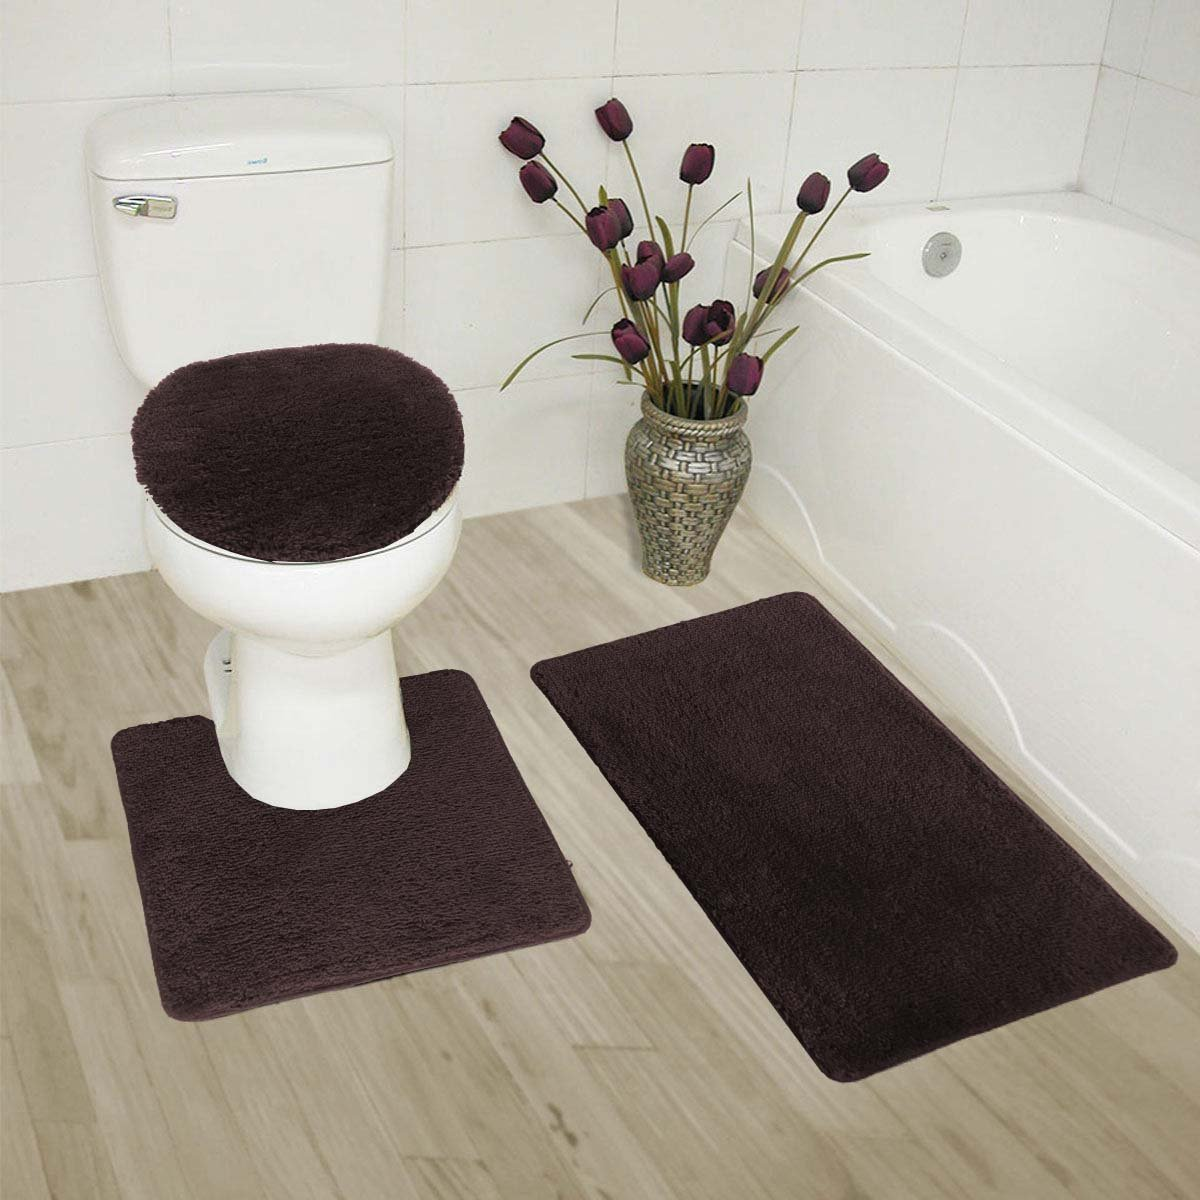 MK Home Collection 3 Piece Bathroom Rug Set Bath Rug, Contour Mat & Lid Cover Non-Slip with Rubber Backing Solid Brown/Chocolate New